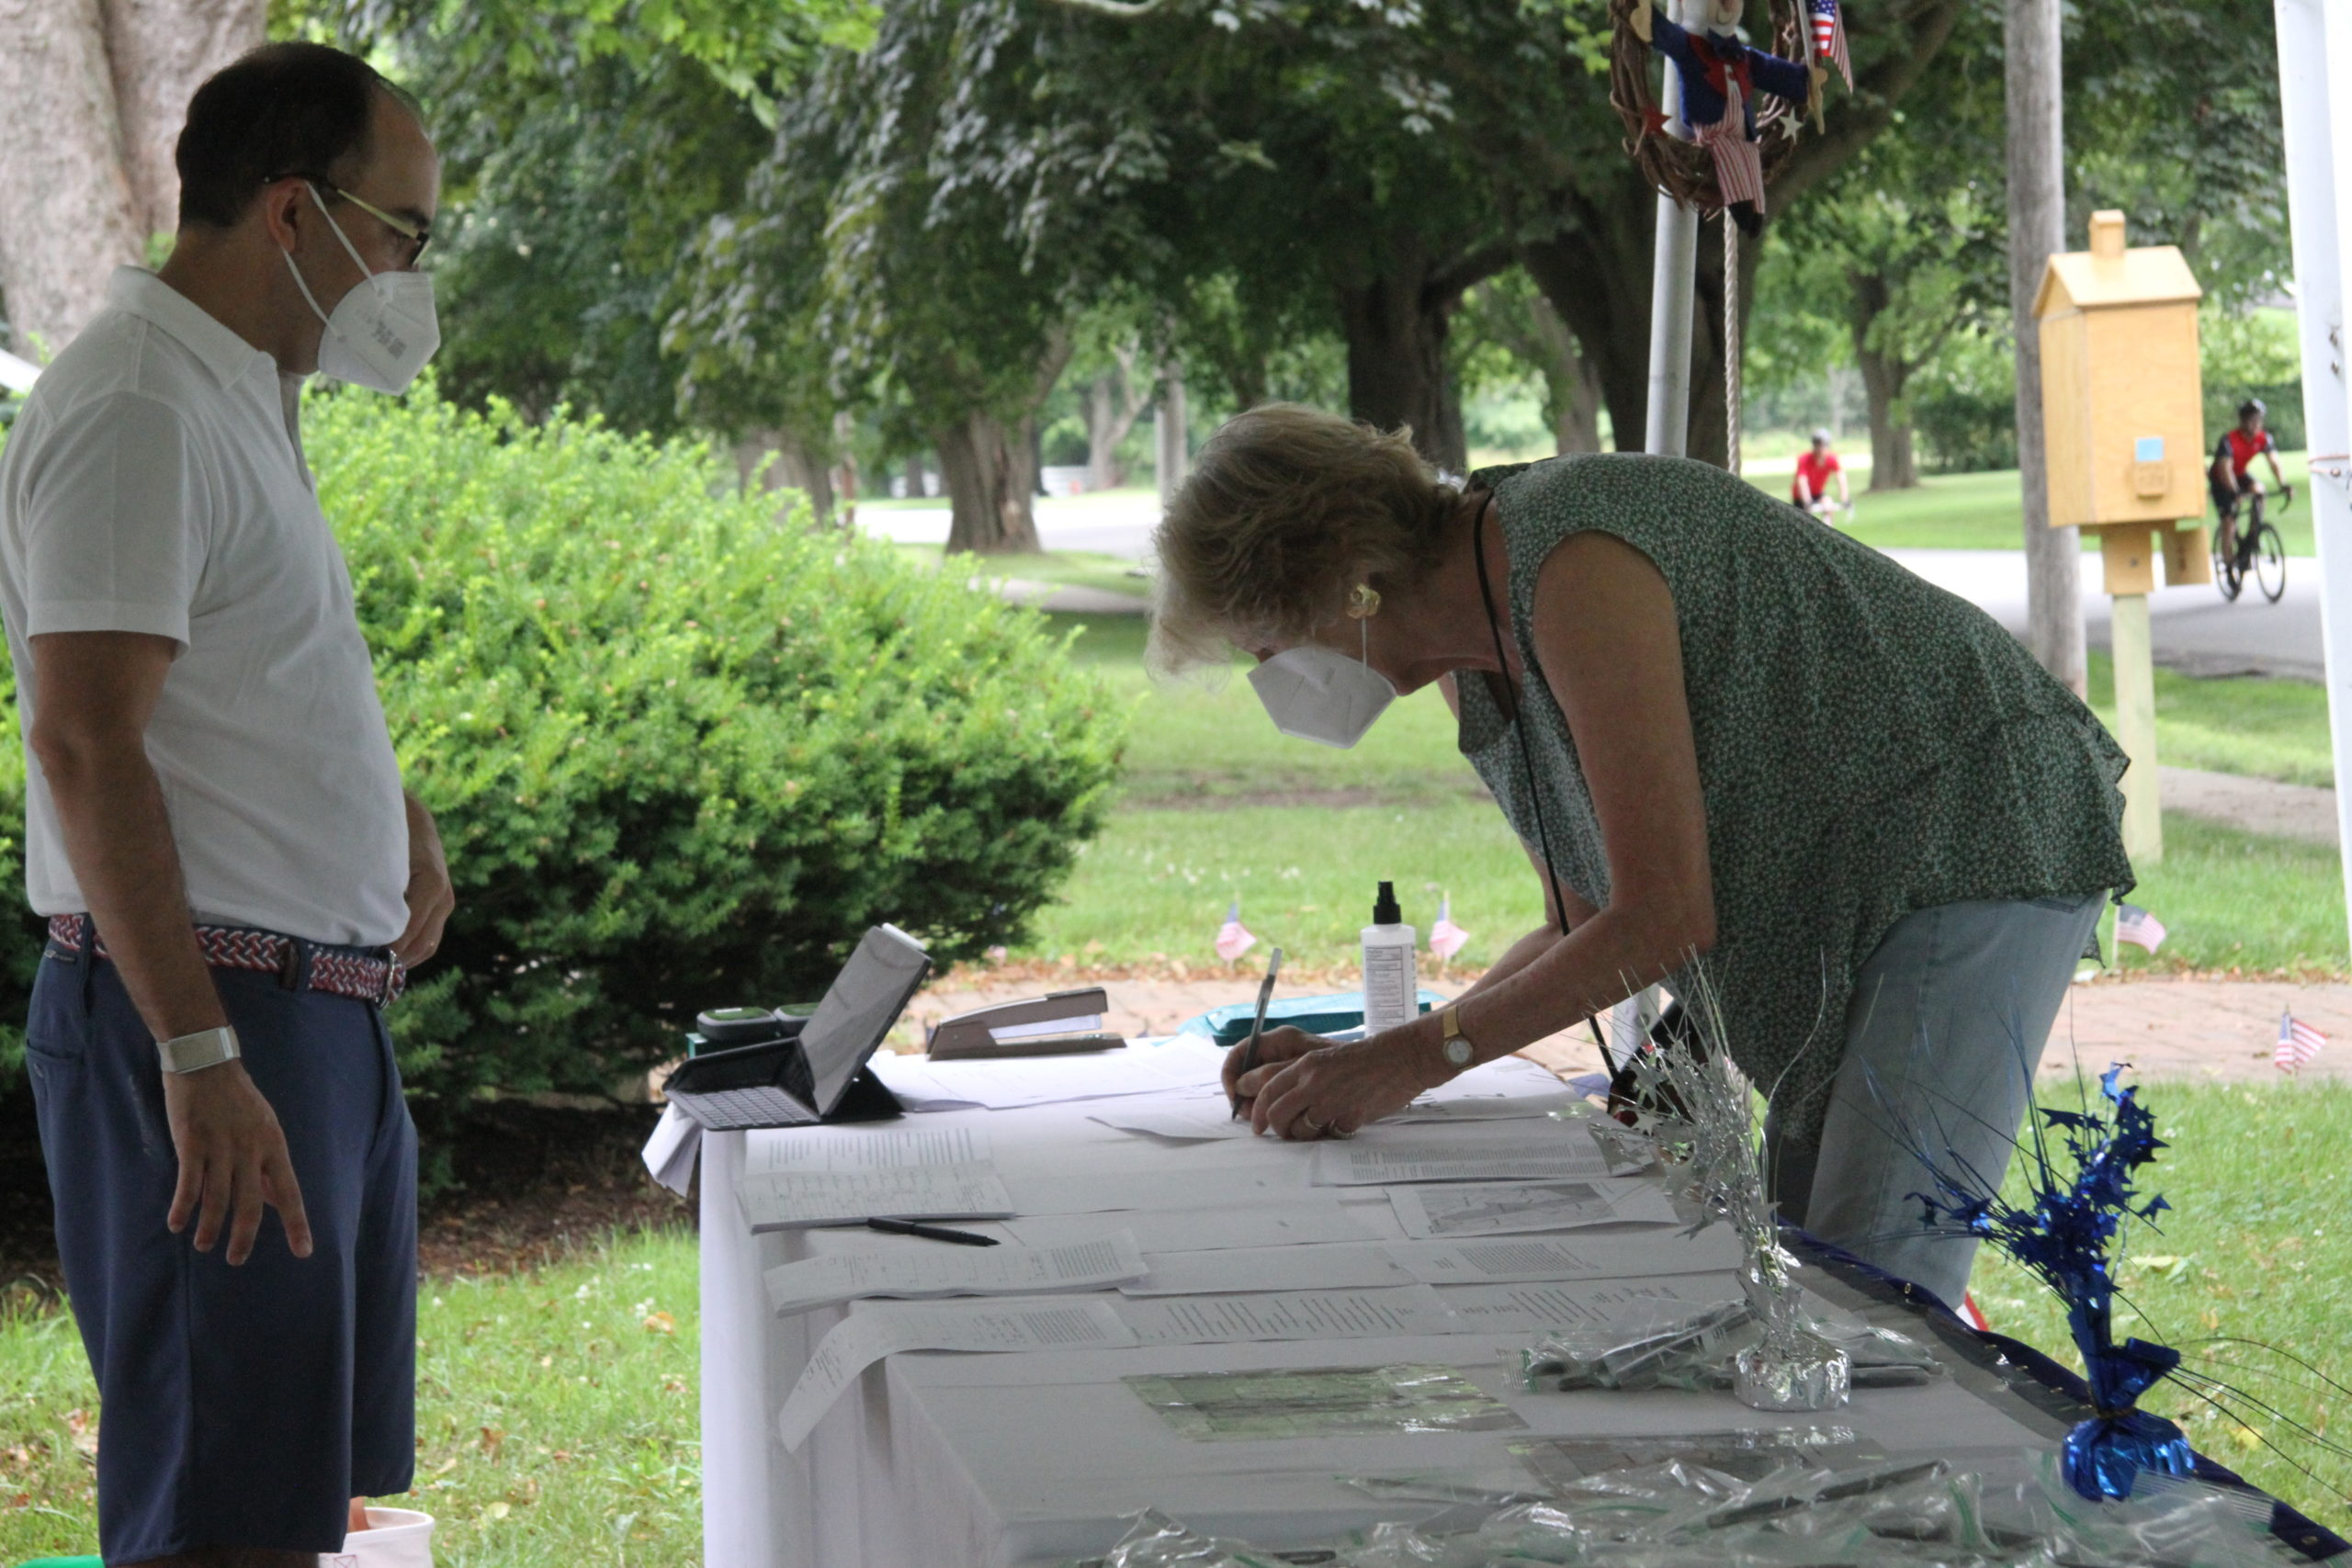 Members of the Citizens for the Preservation of Wainscott gathered signatures on a petition to incorporate the hamlet into a village over the Fourth of July weekend.